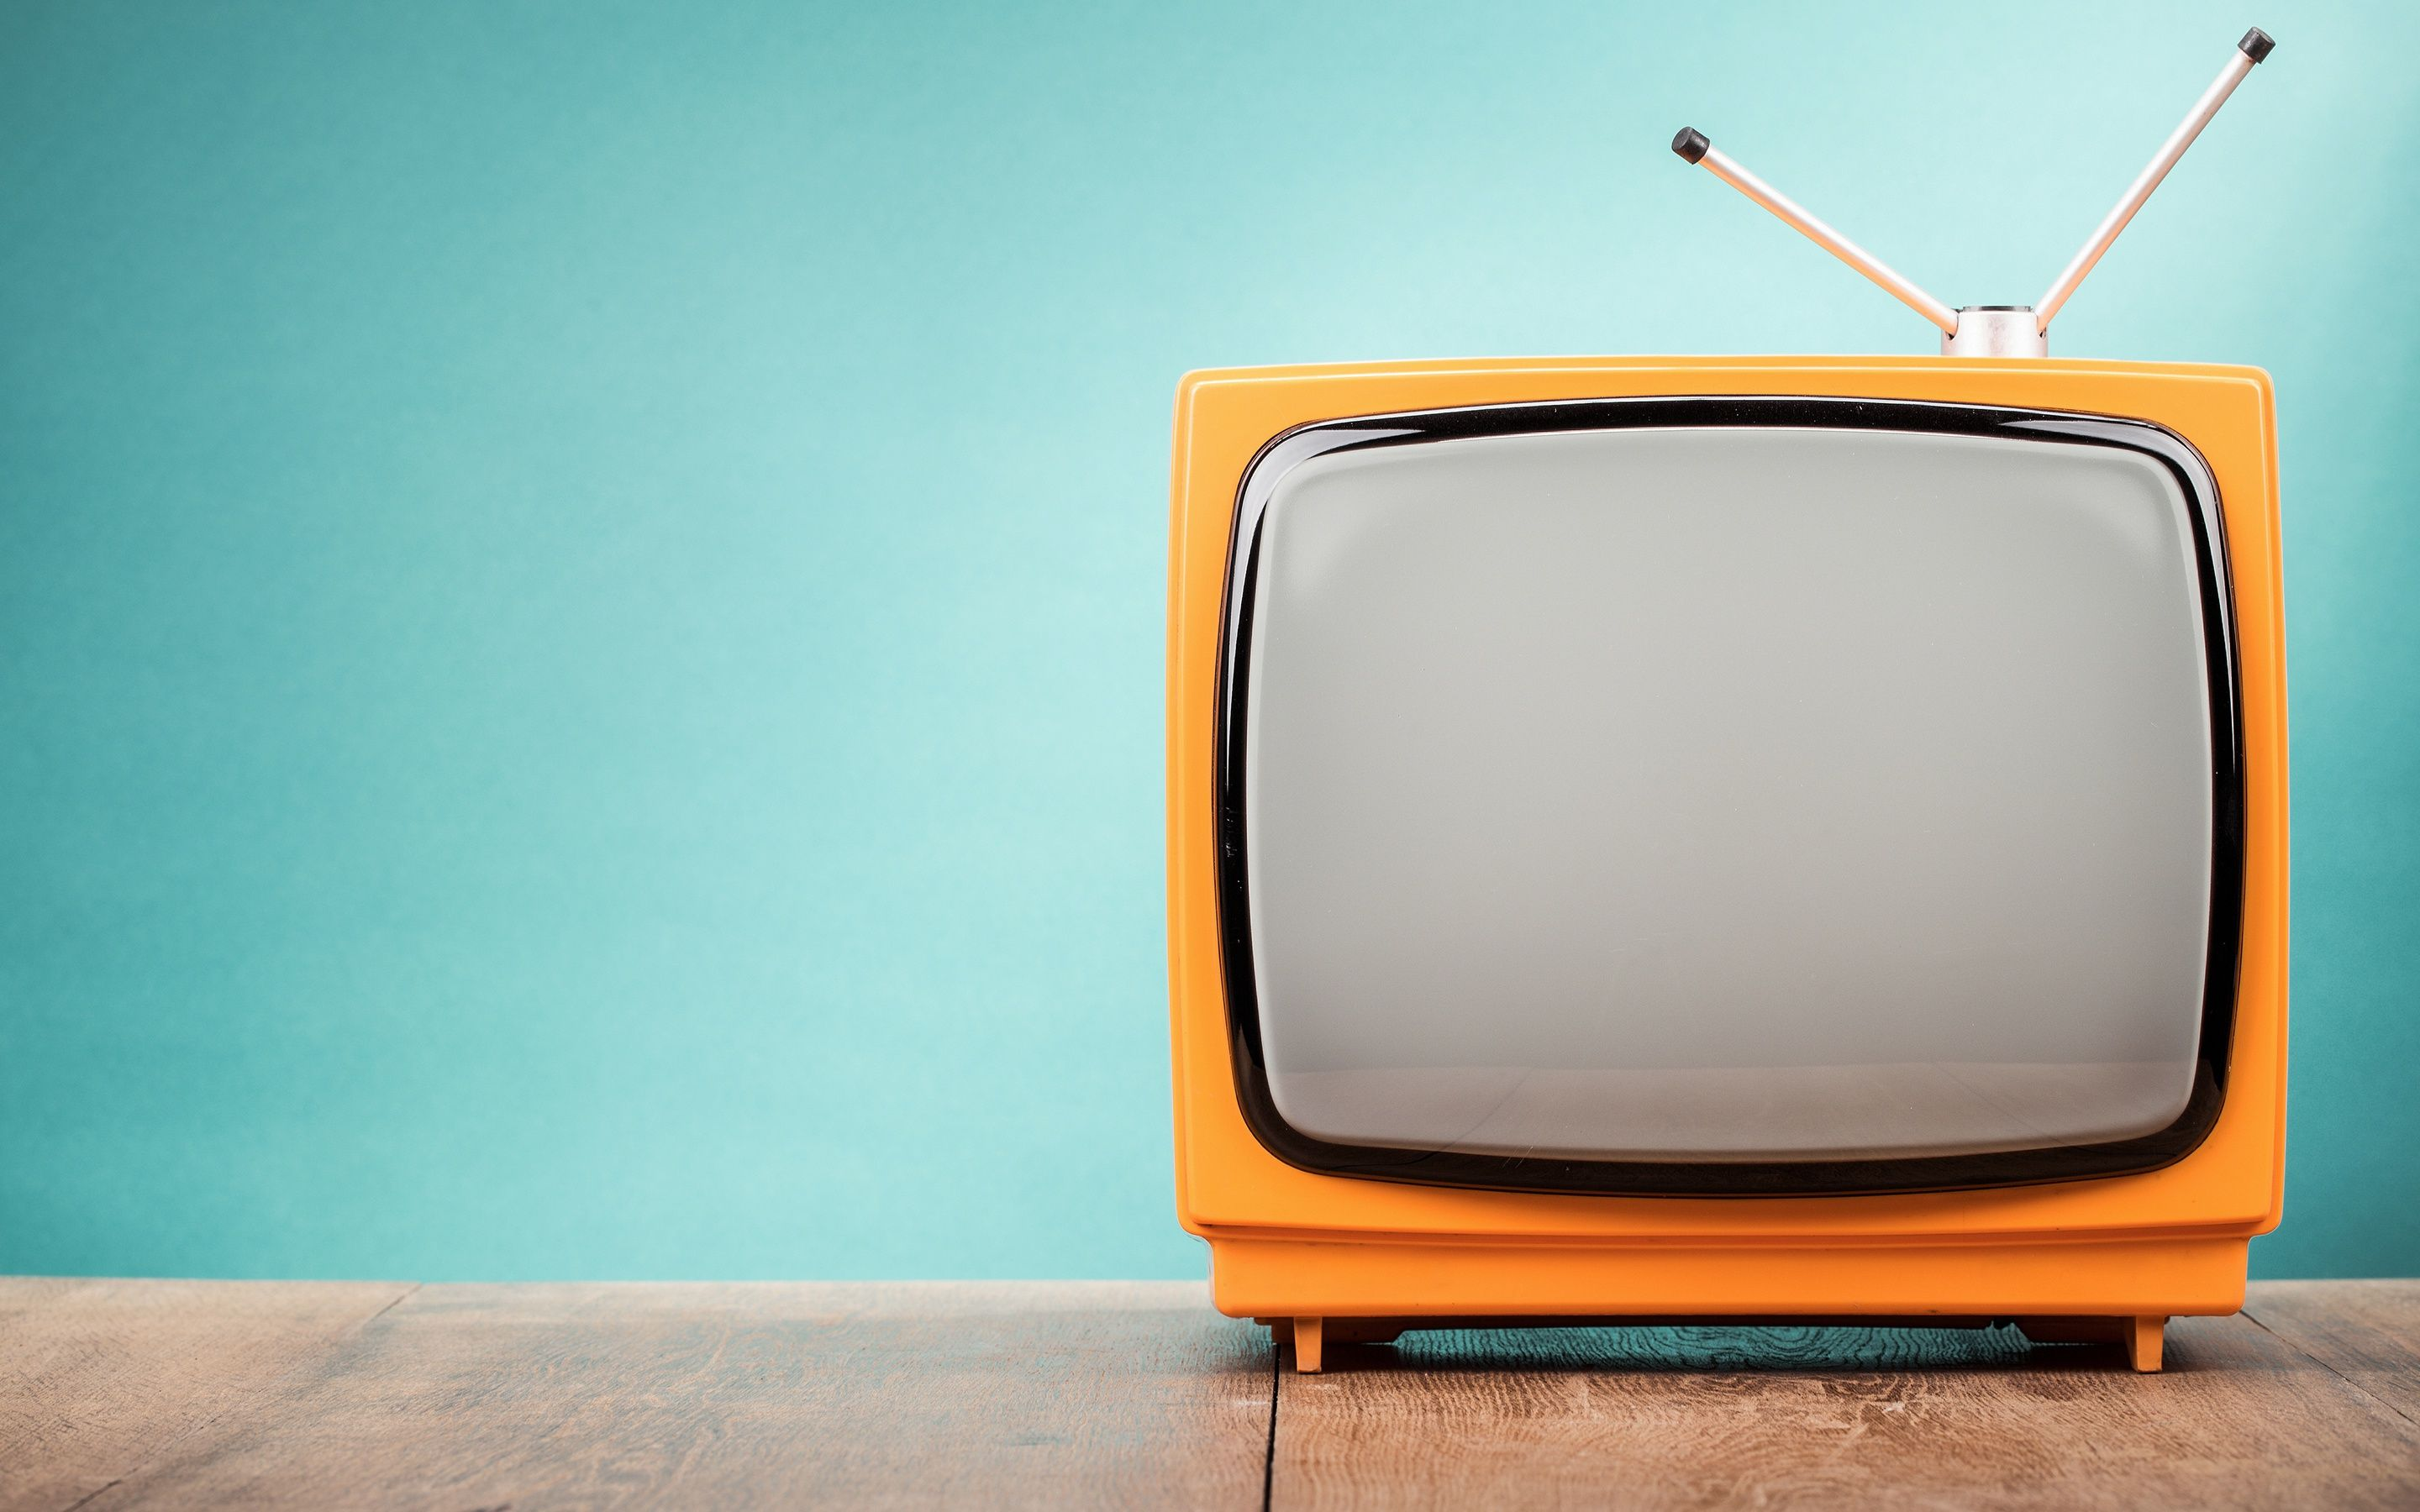 Retro Tv Wallpapers Top Free Retro Tv Backgrounds Wallpaperaccess